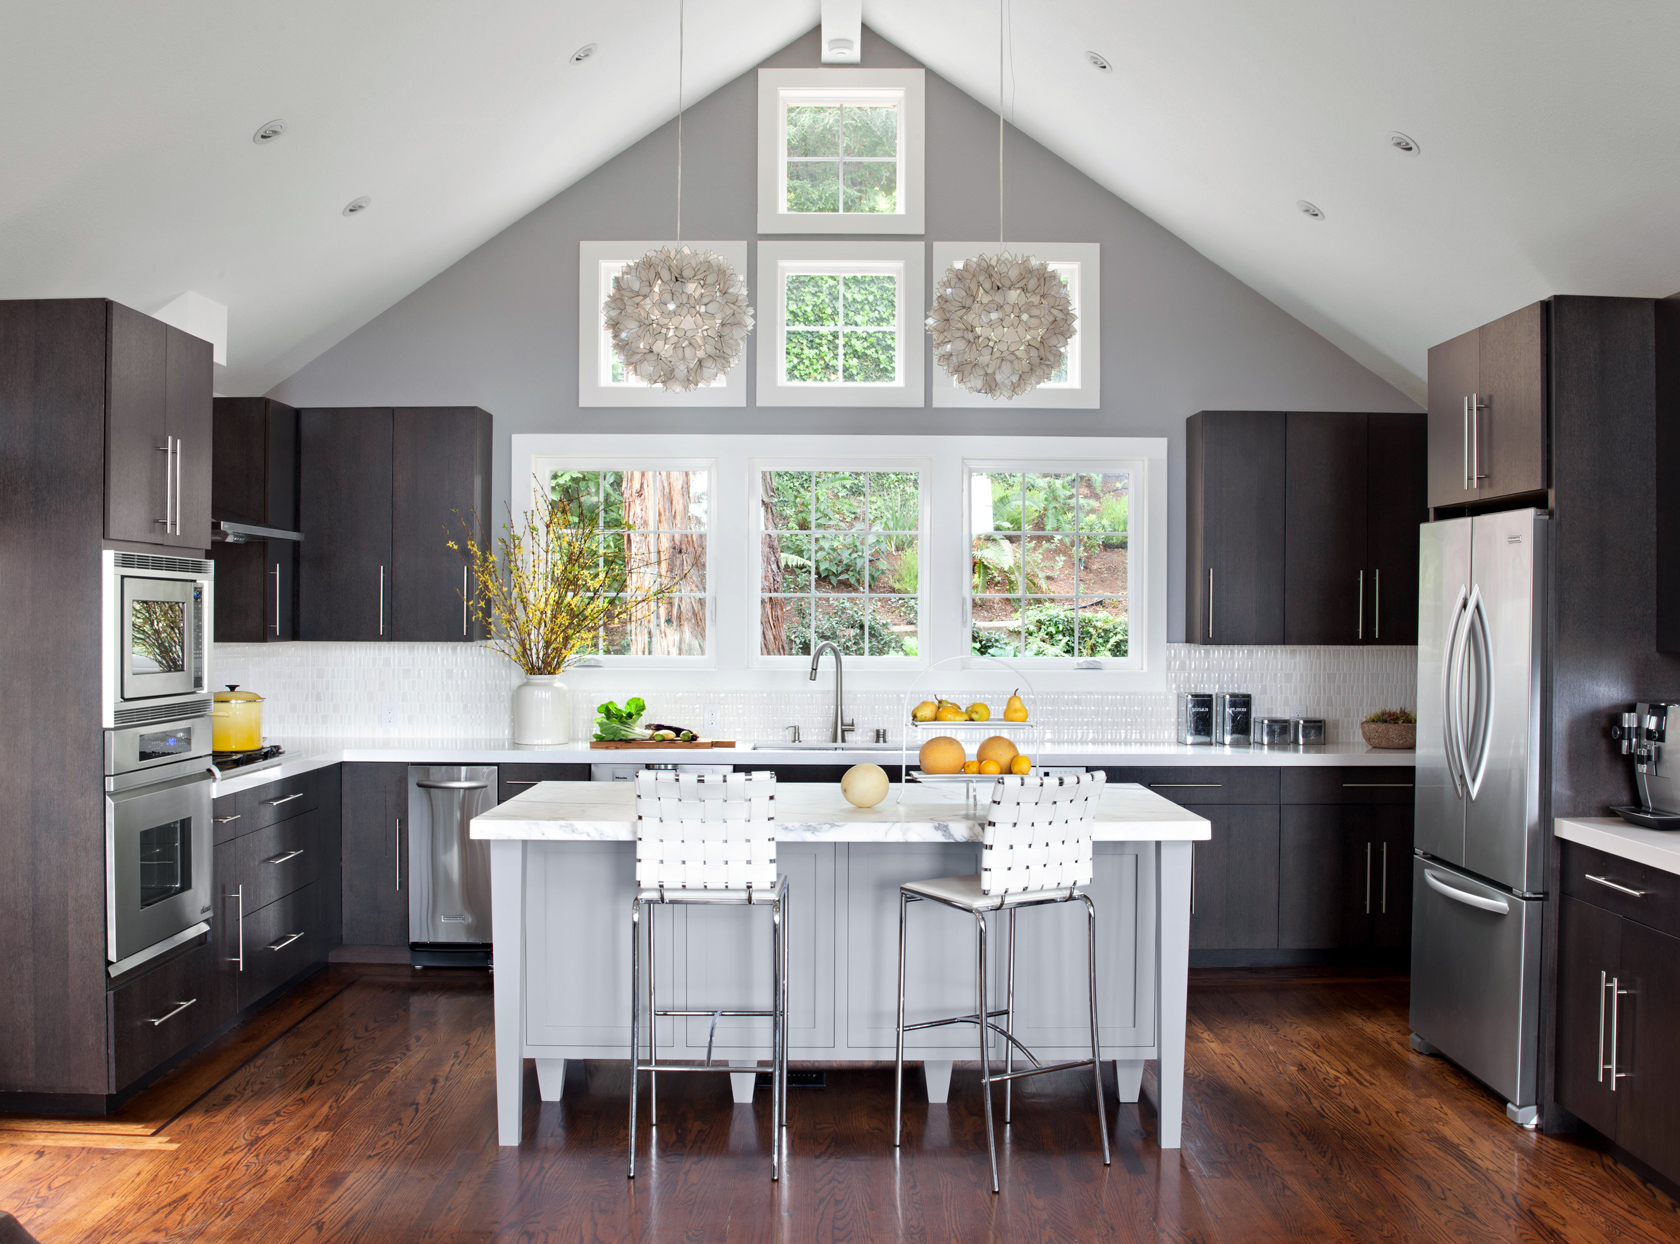 open kitchen with island and wood cabinets